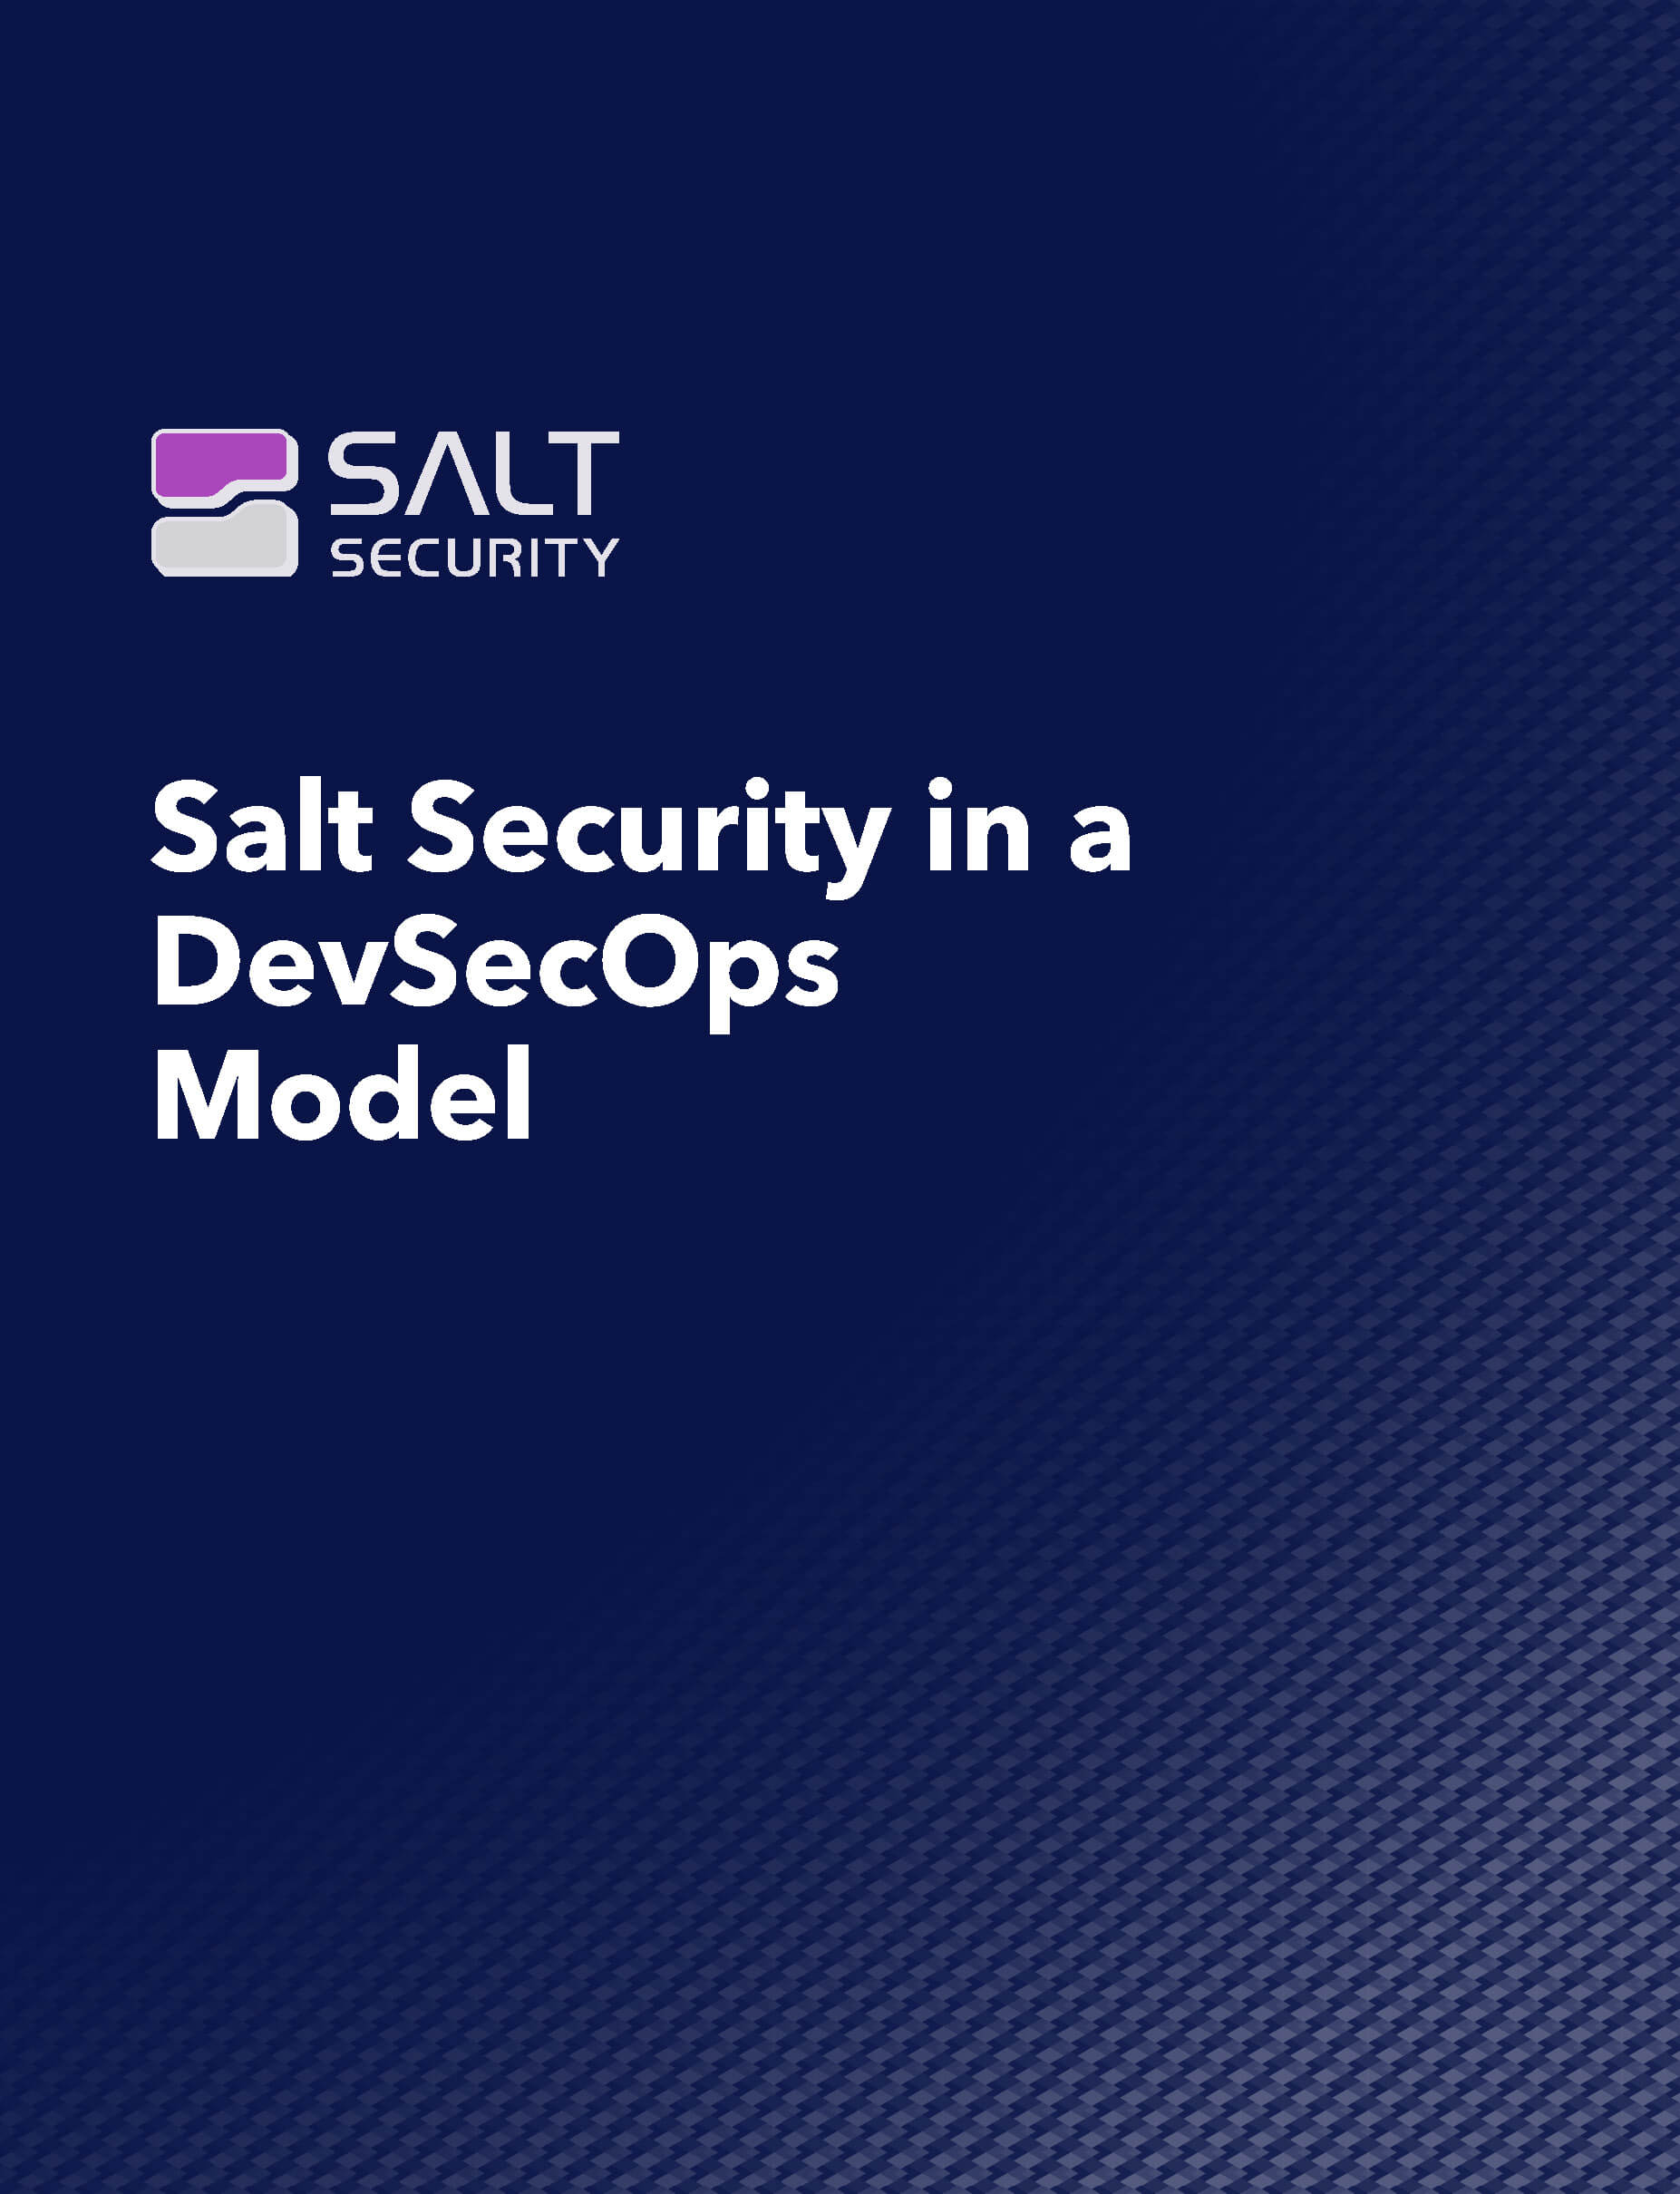 Salt Security In A DevSecOps Model